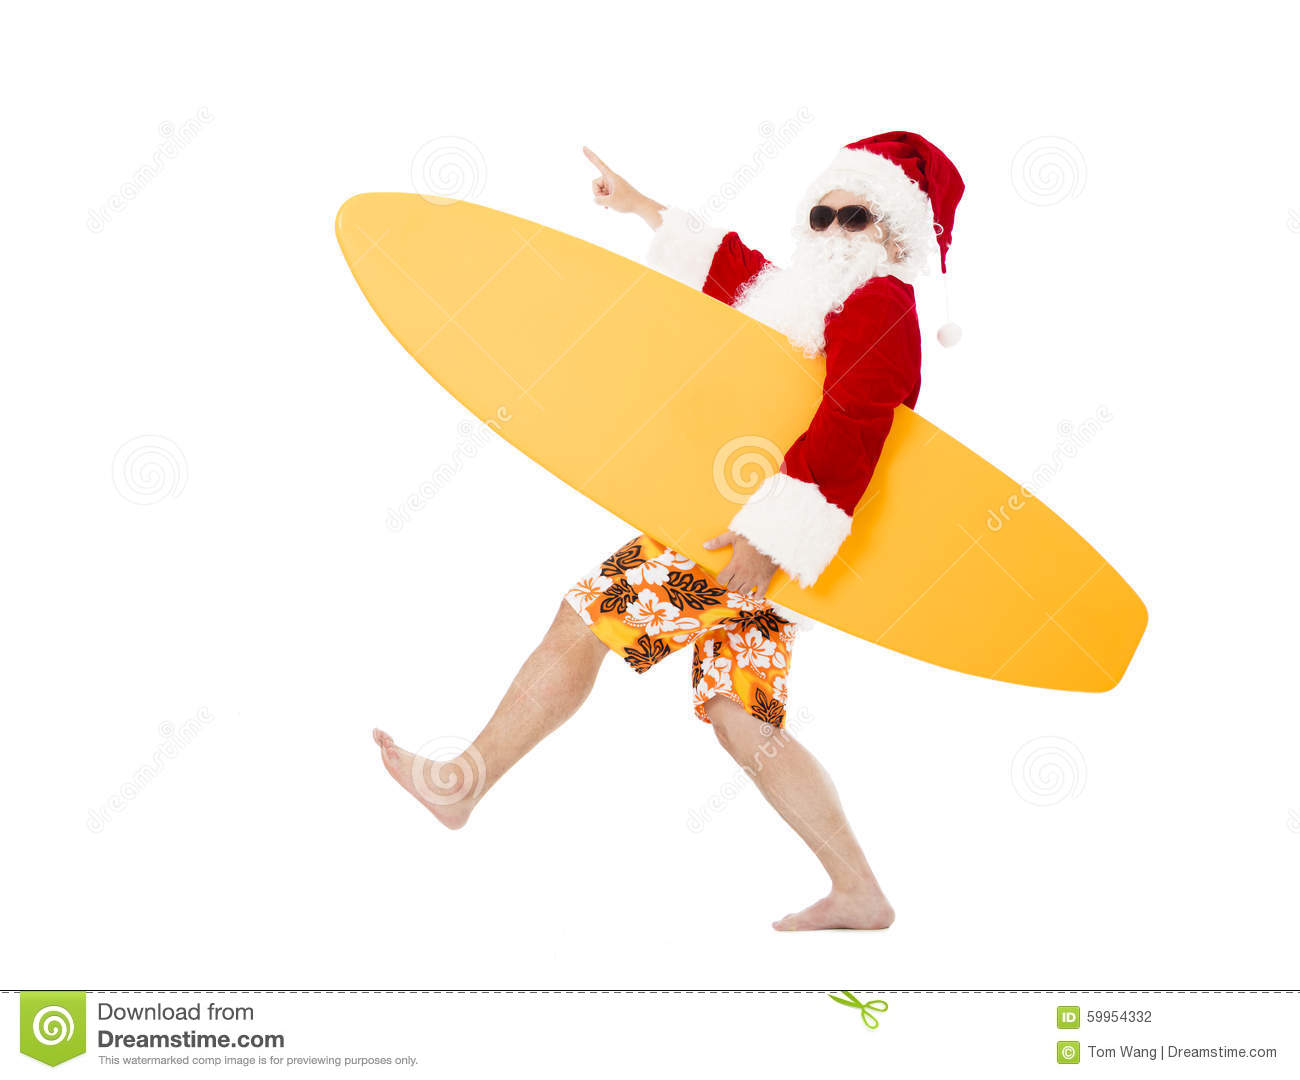 Santa Claus holding surf board with pointing gesture